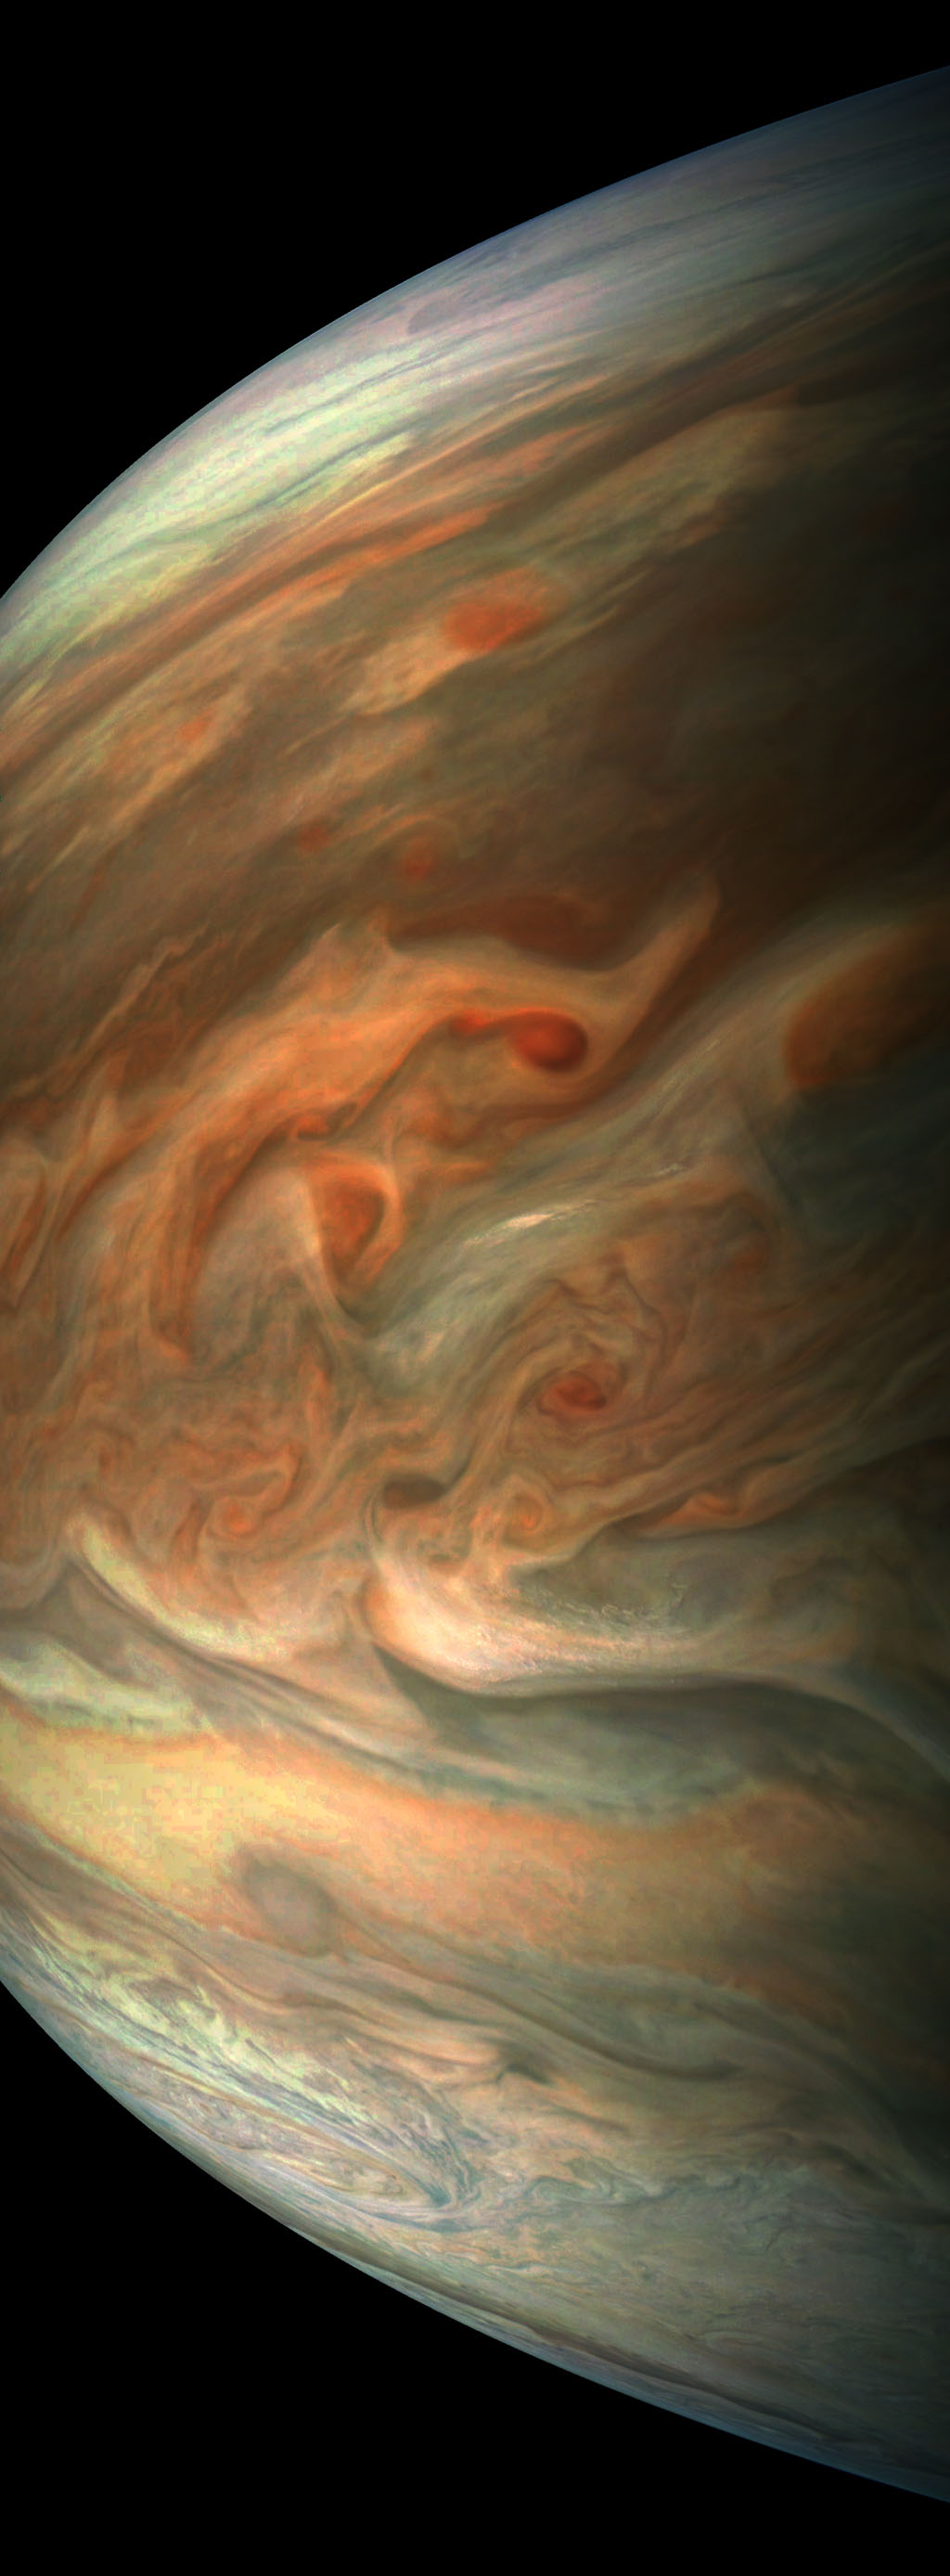 This striking image of Jupiter was captured on Sept. 1, 2017 by NASA's Juno spacecraft as it performed its eighth flyby of the gas giant planet.